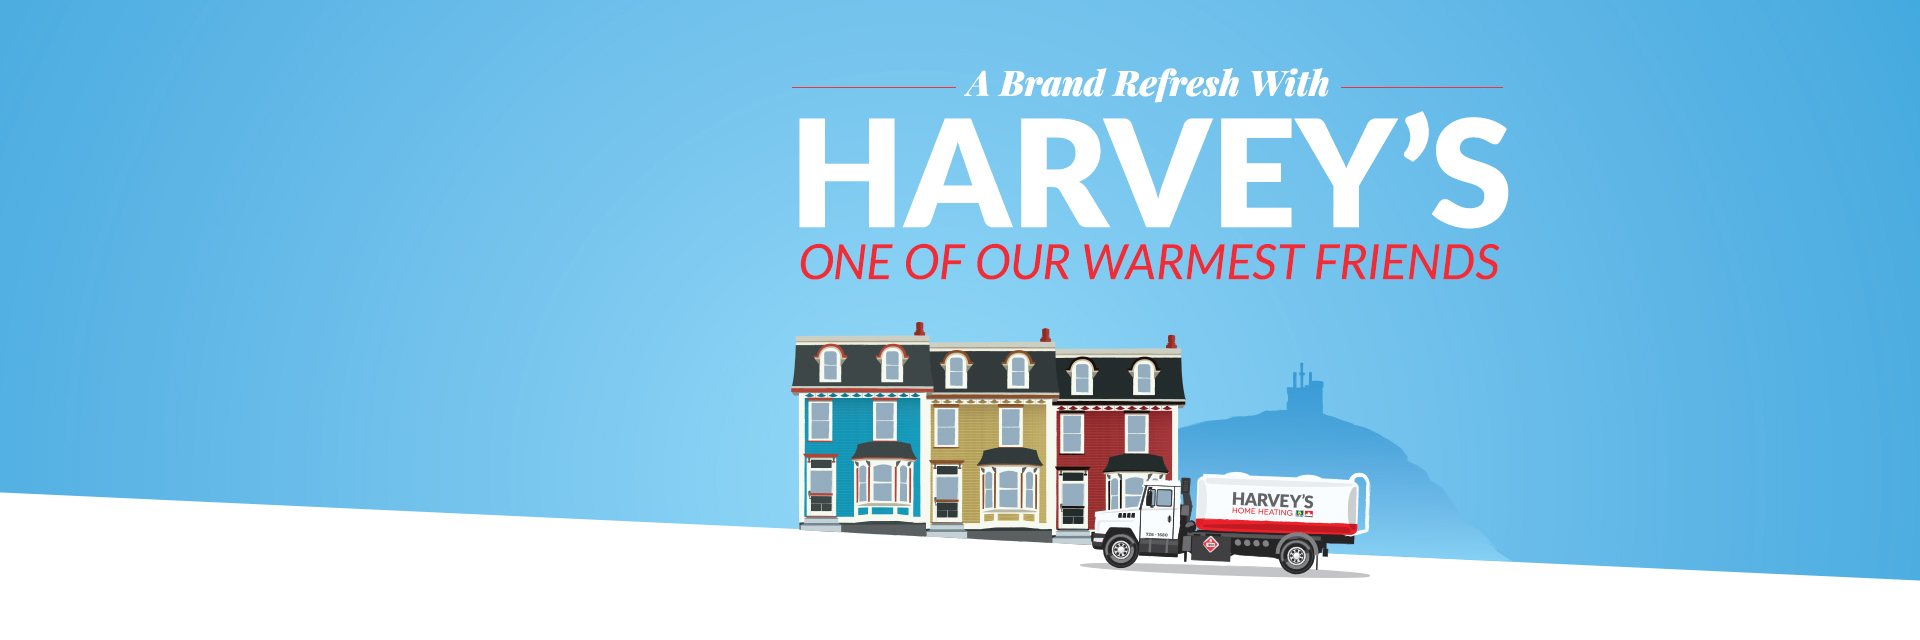 Dc Presents: Harvey's Home Heating Brand Refresh